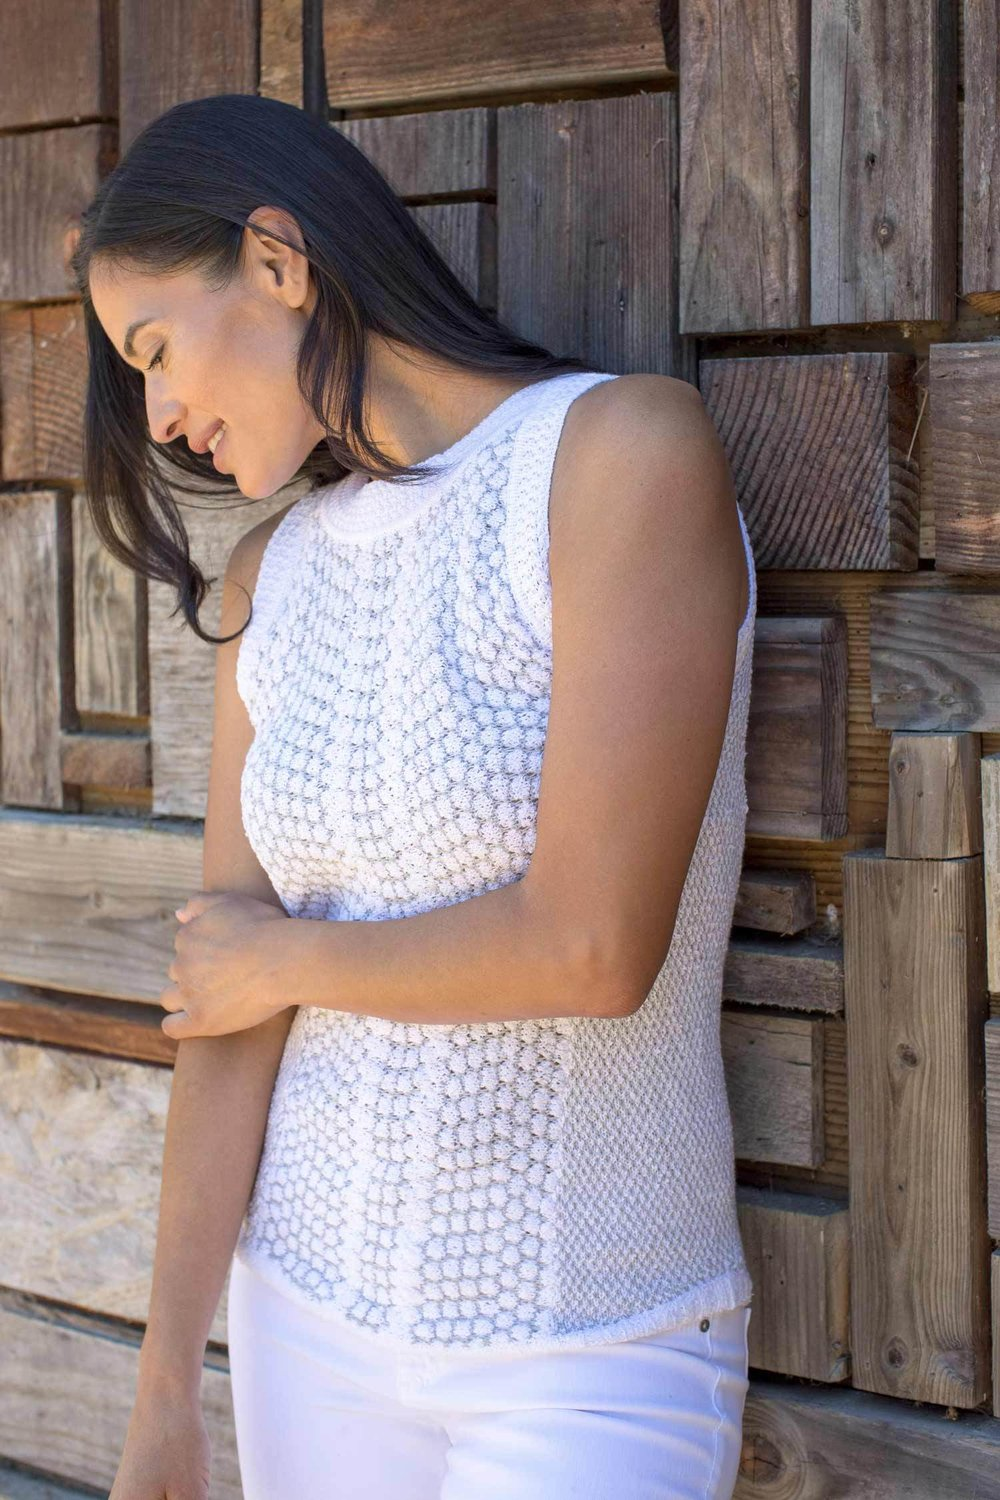 You may also like: - Indigenous Designs Crochet and Knit Top